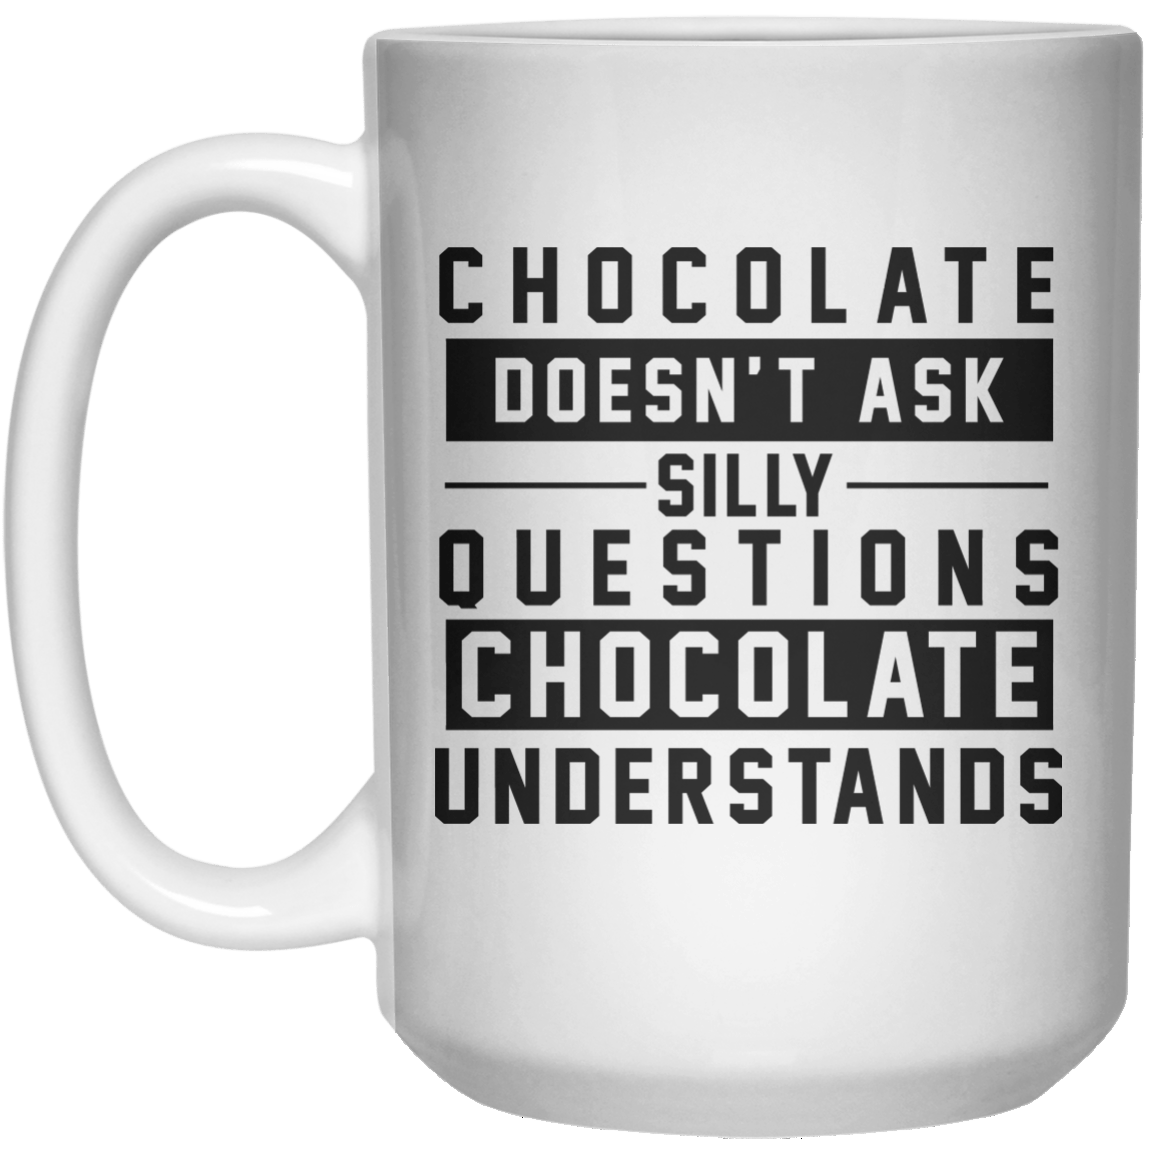 chocolate doesn't ask stilly questions chocolate understands MUG  Mug - 15oz - Shirtoopia